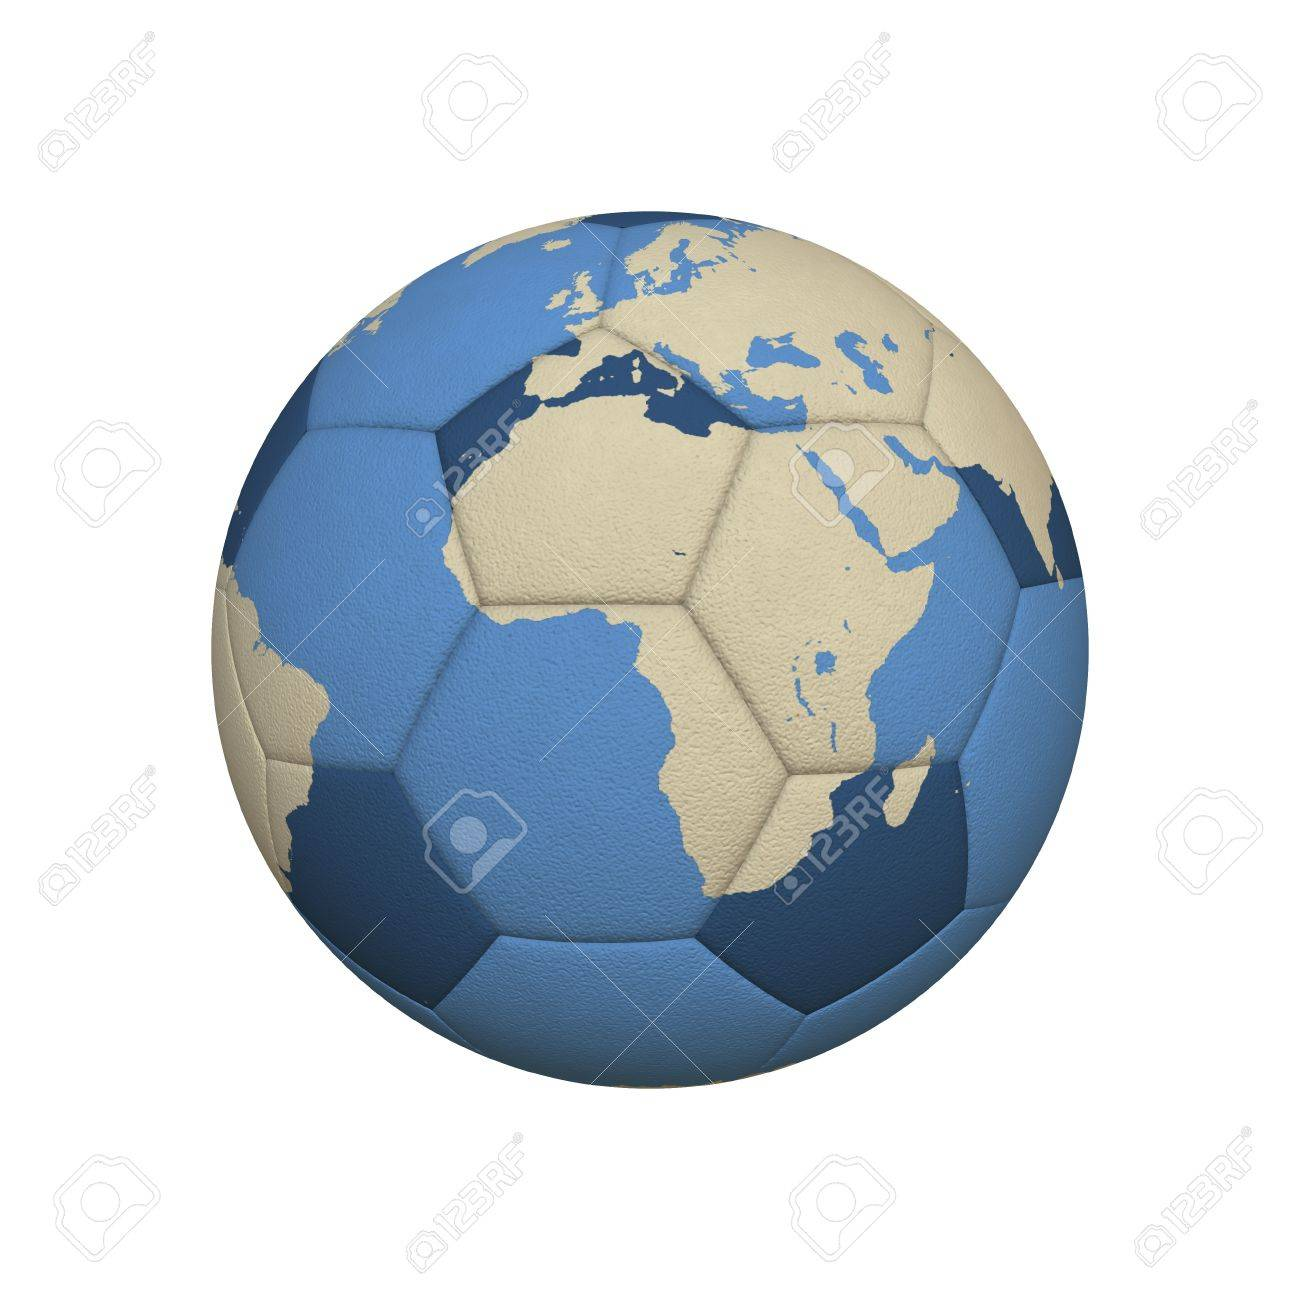 World map on a soccer ball centered on african continent stock photo stock photo world map on a soccer ball centered on african continent gumiabroncs Images